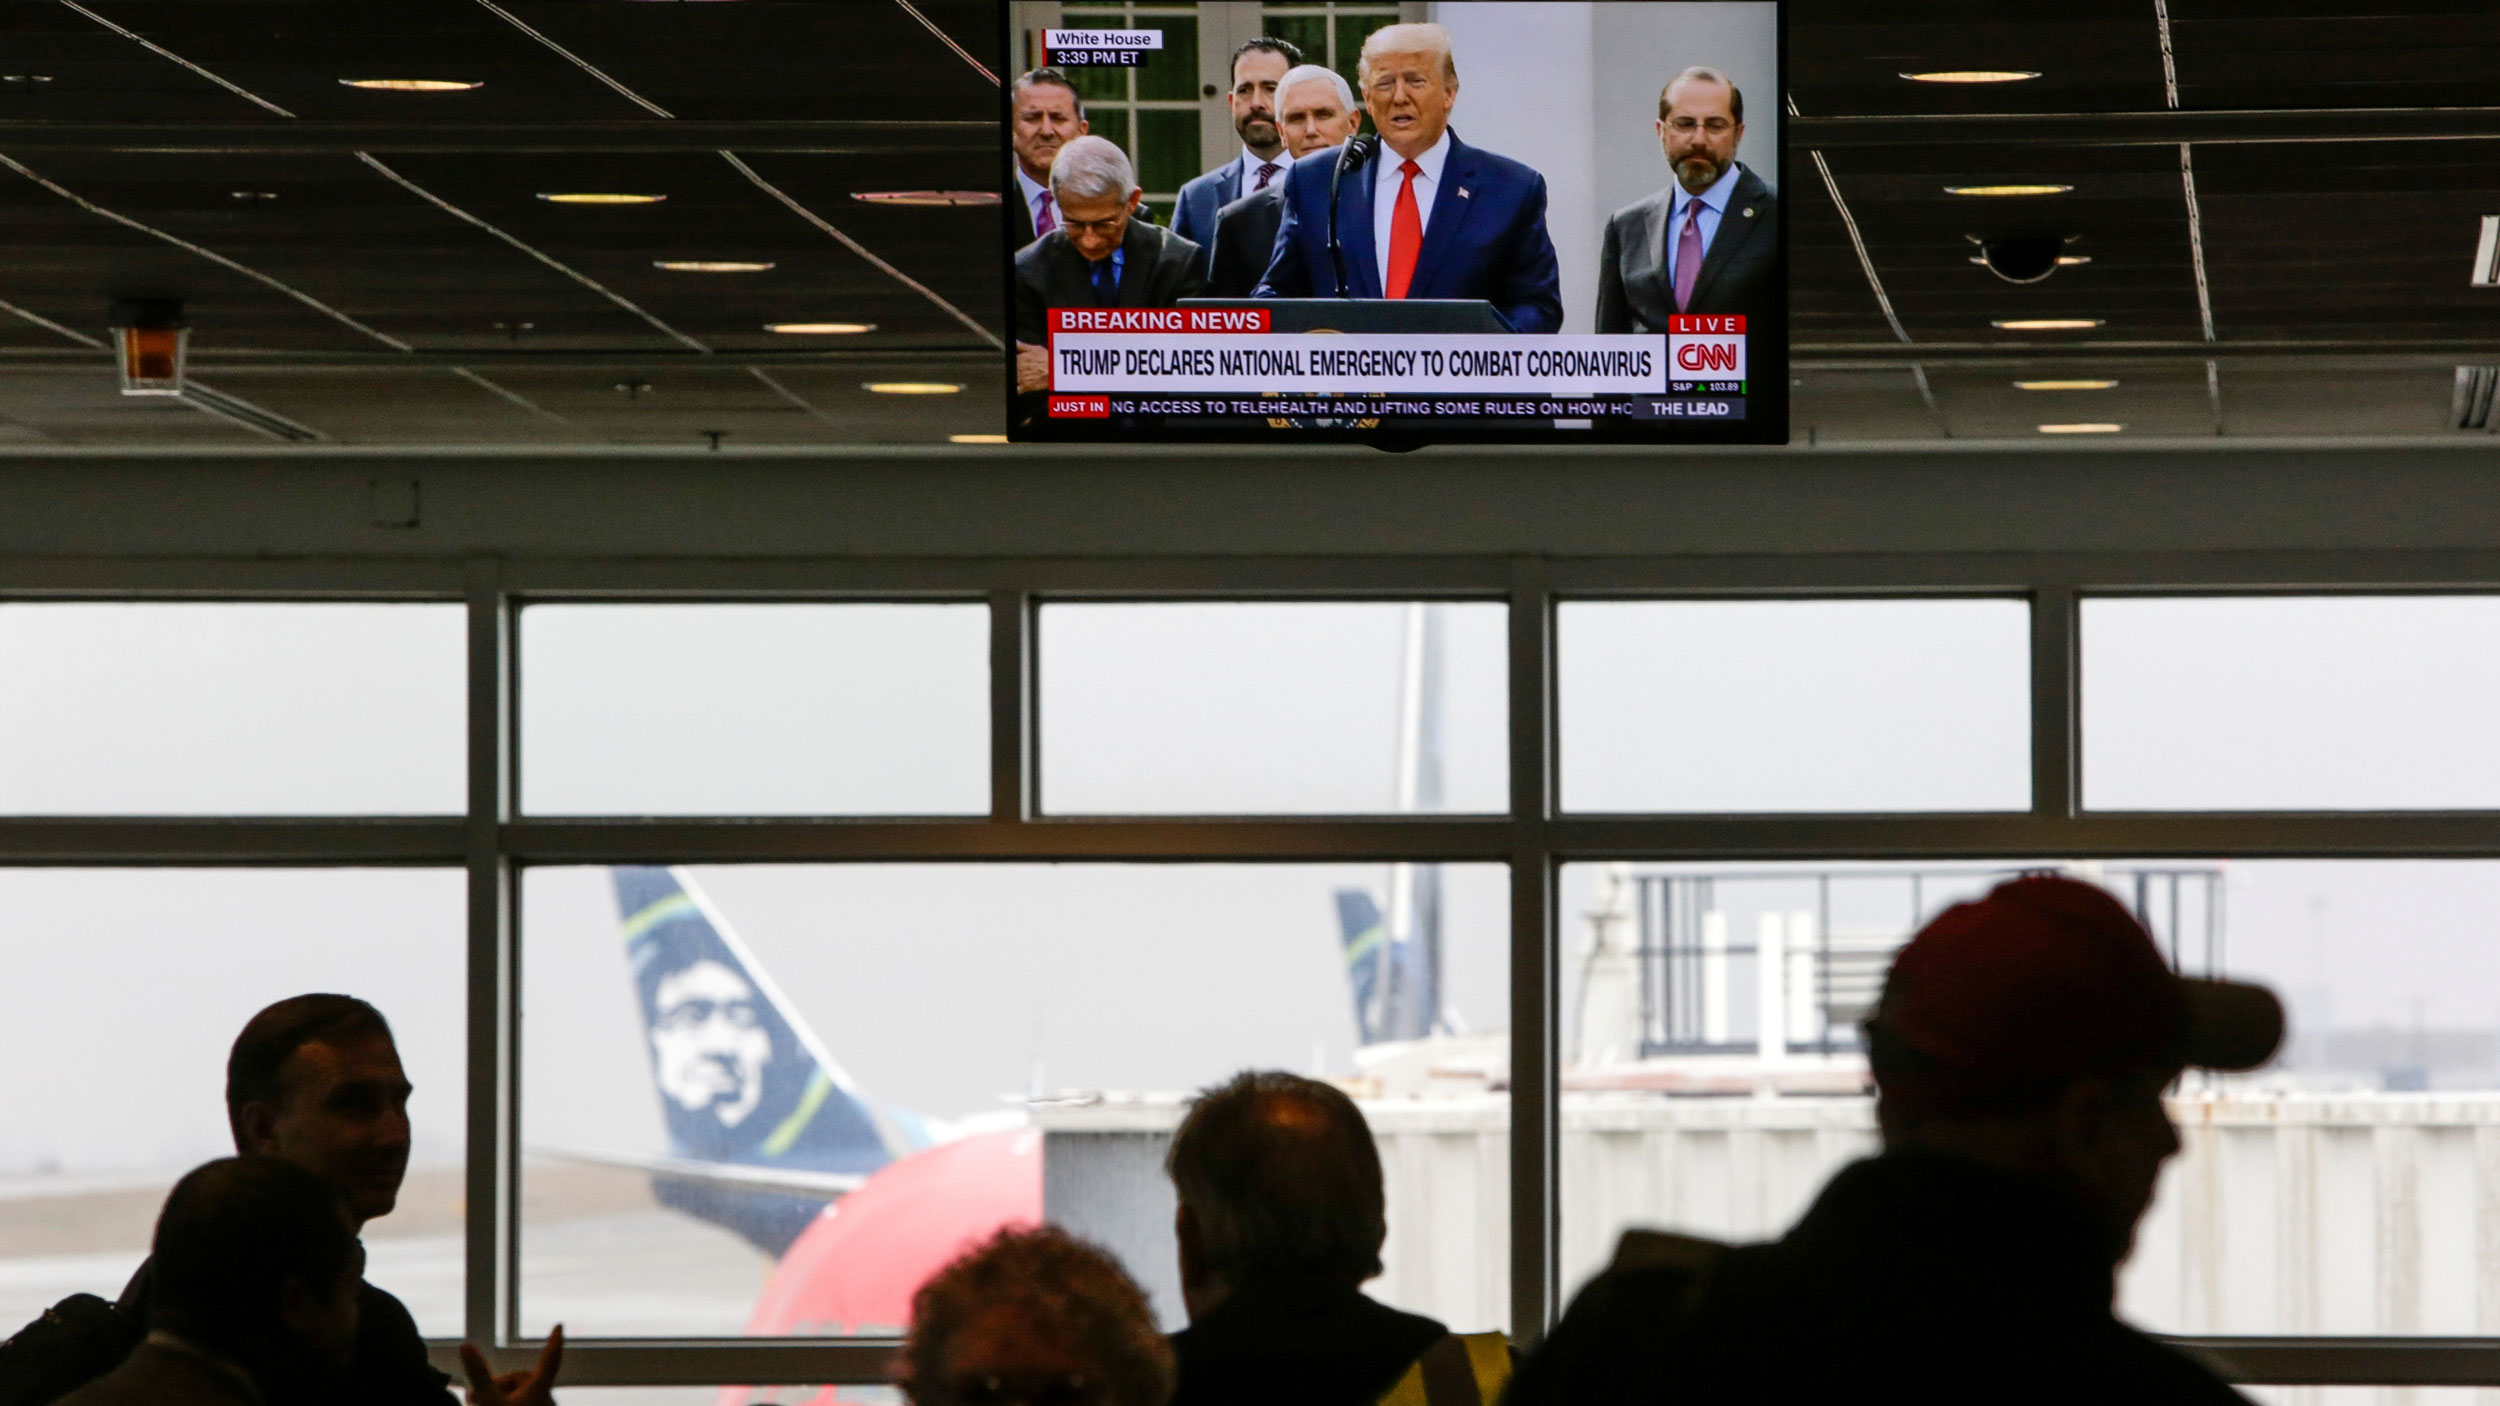 A television is shown hanging from the ceiling with US President Donald Trump displayed while several people are in shadow below.